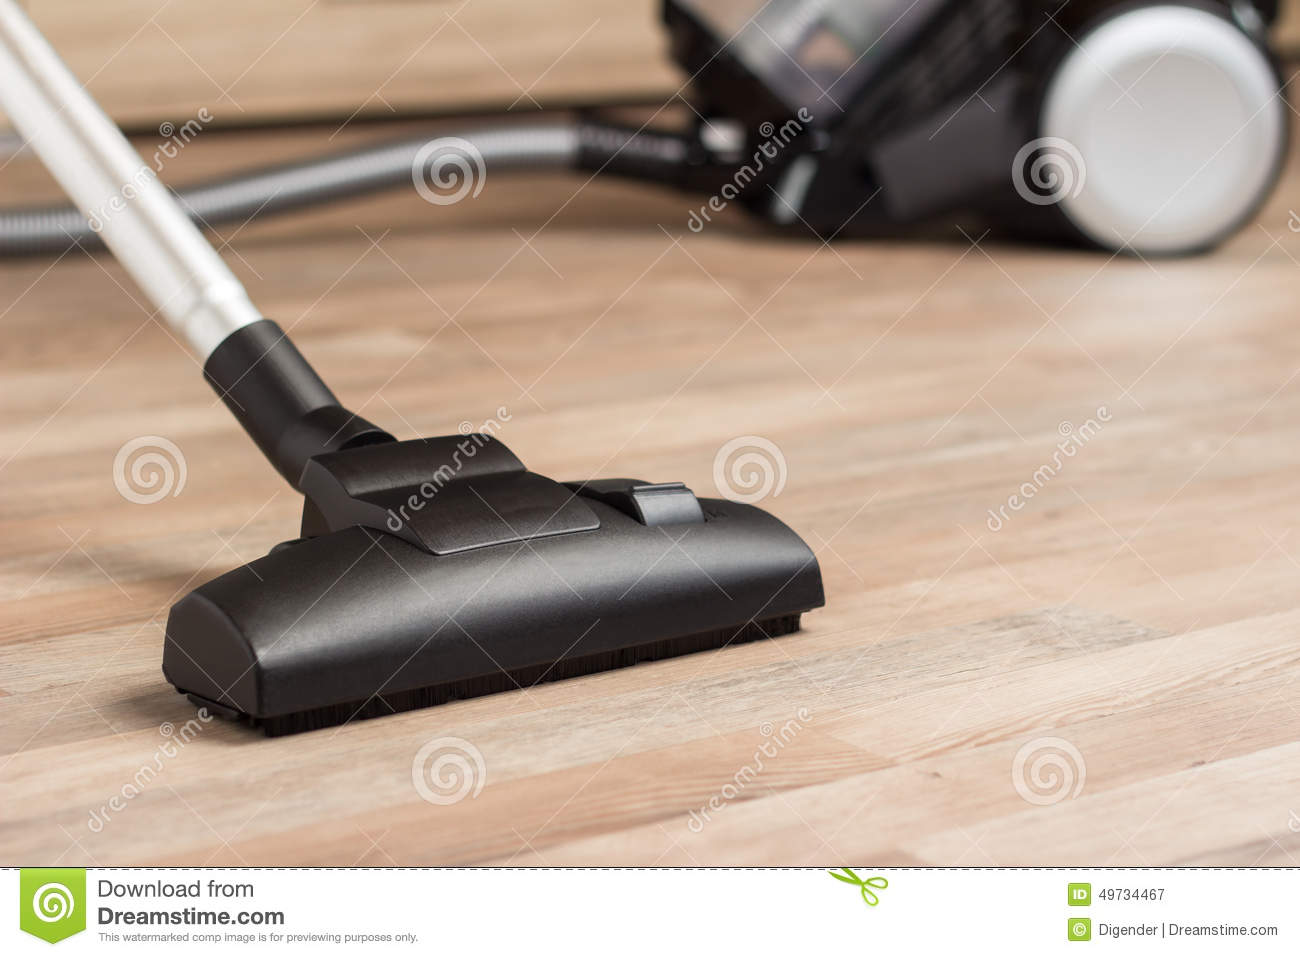 Vacuuming A Thick Pile White Carpet Royalty Free Stock